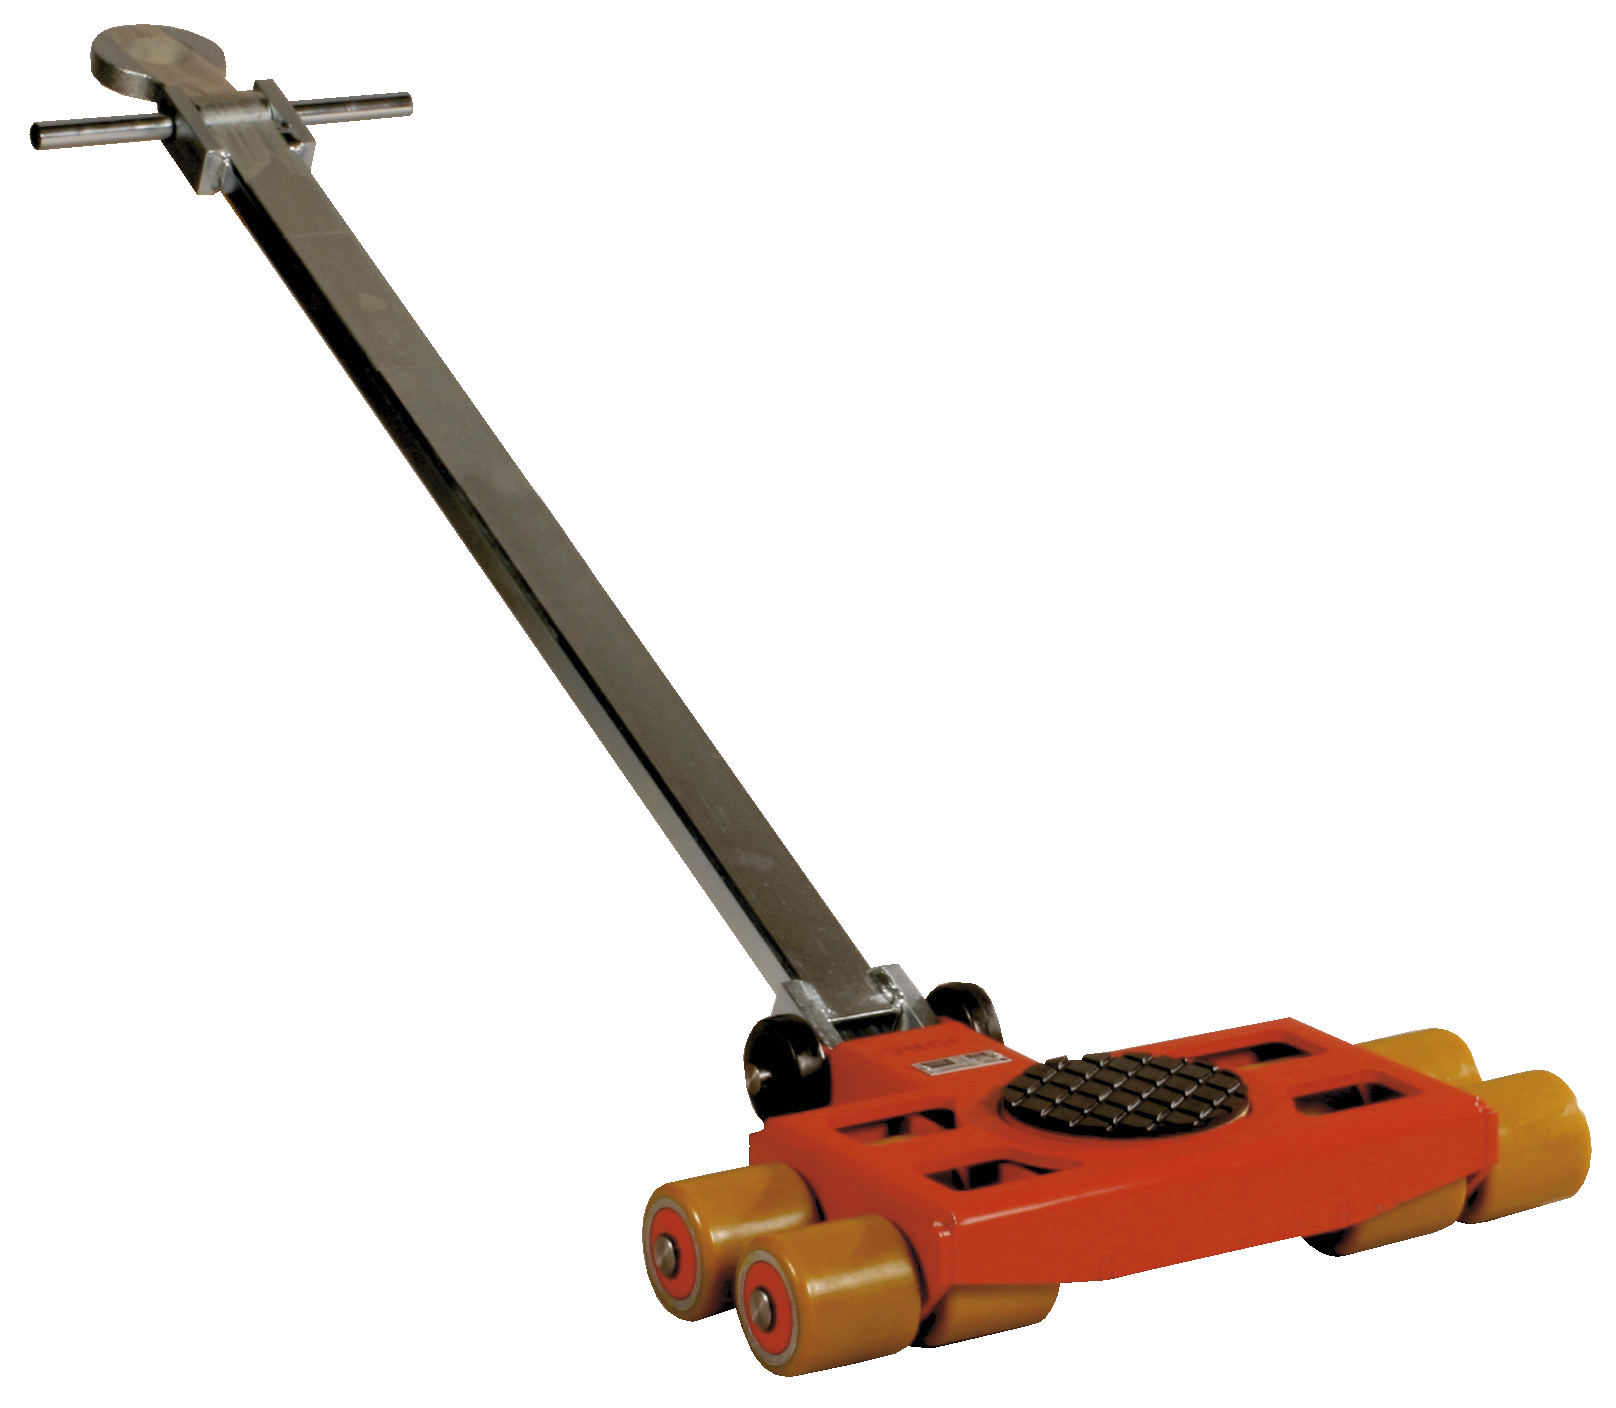 Applications of Hydraulic Jacks and Skates